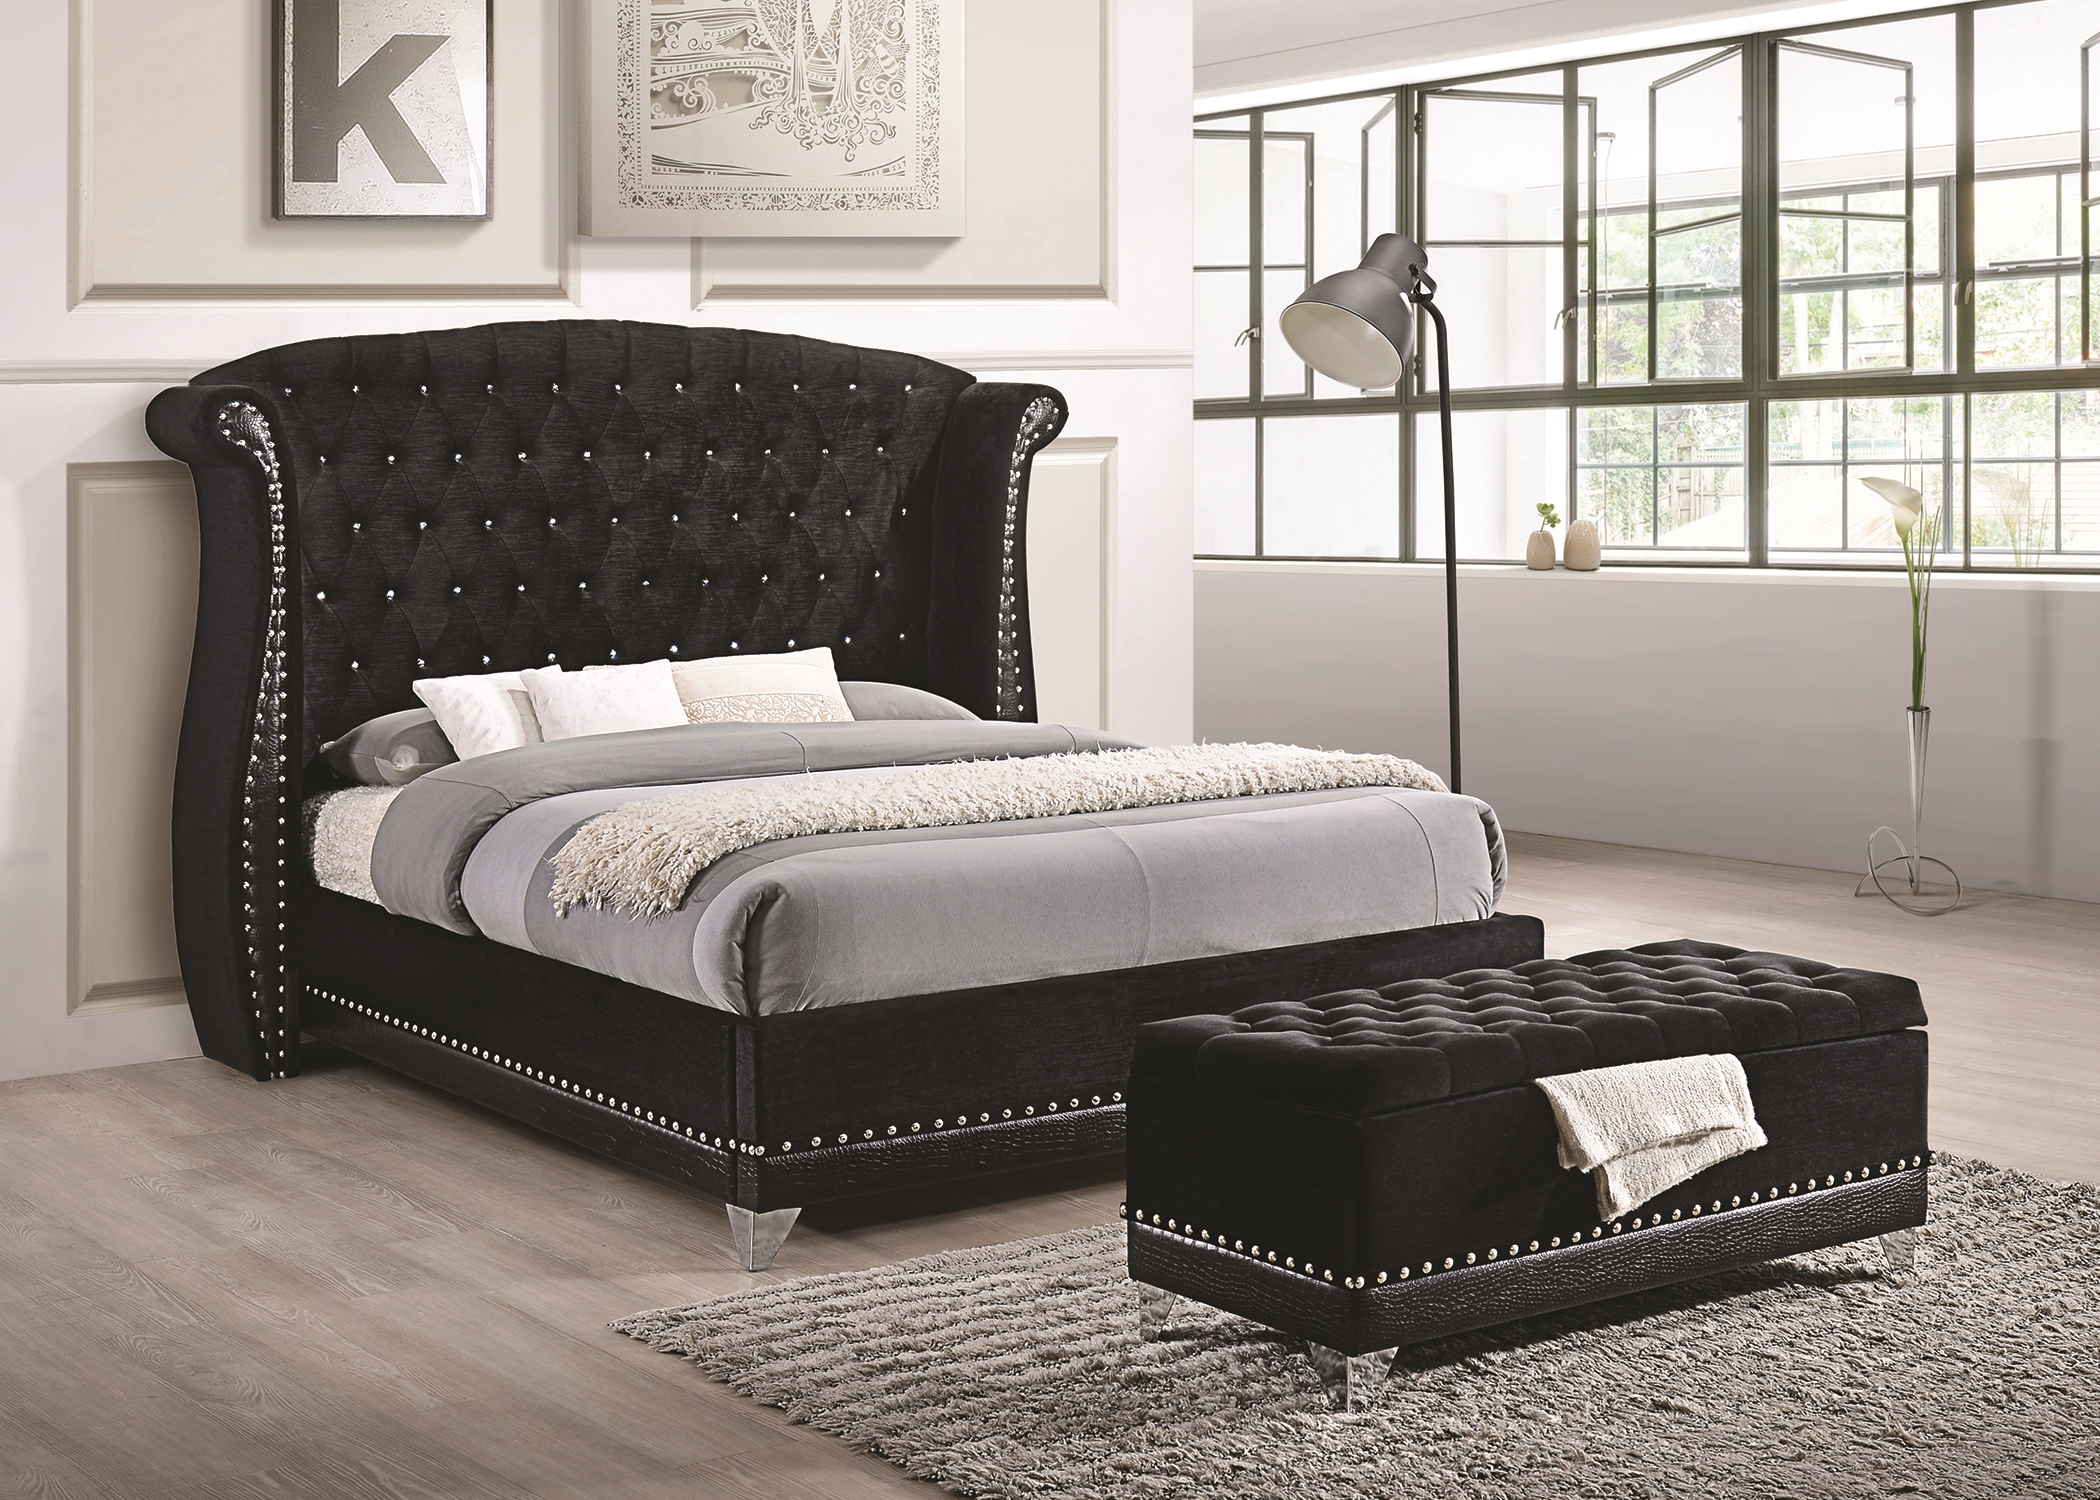 Barzini Black Upholstered King 5-Pc.